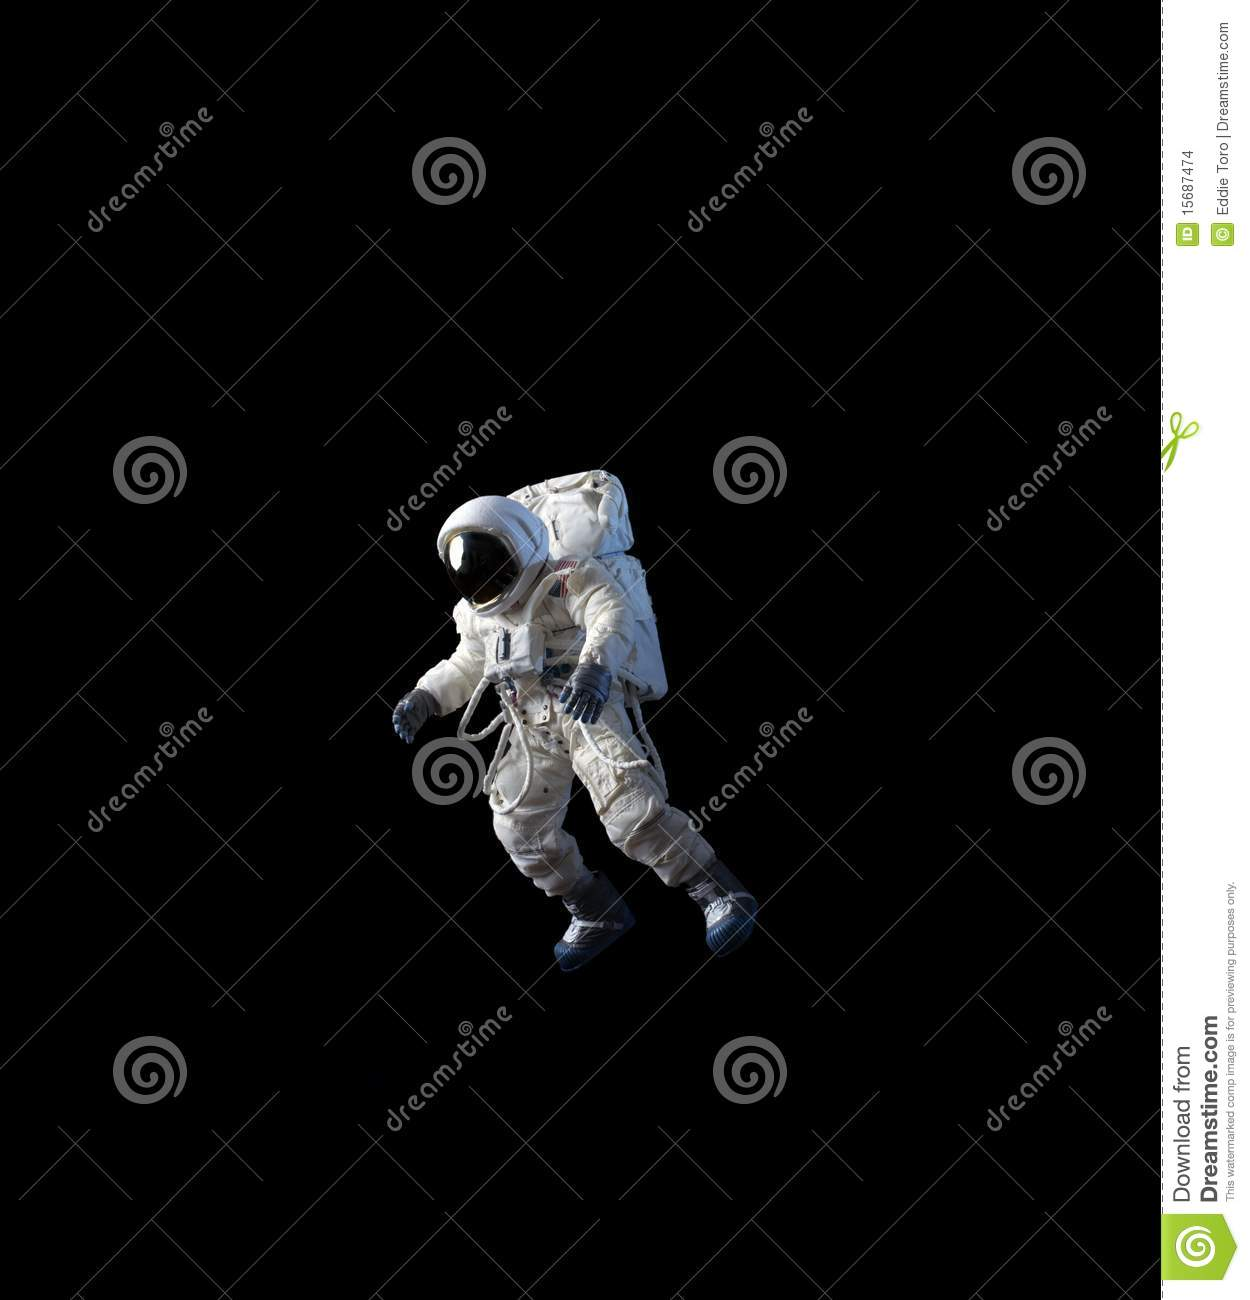 astronaut drifts into space - photo #16